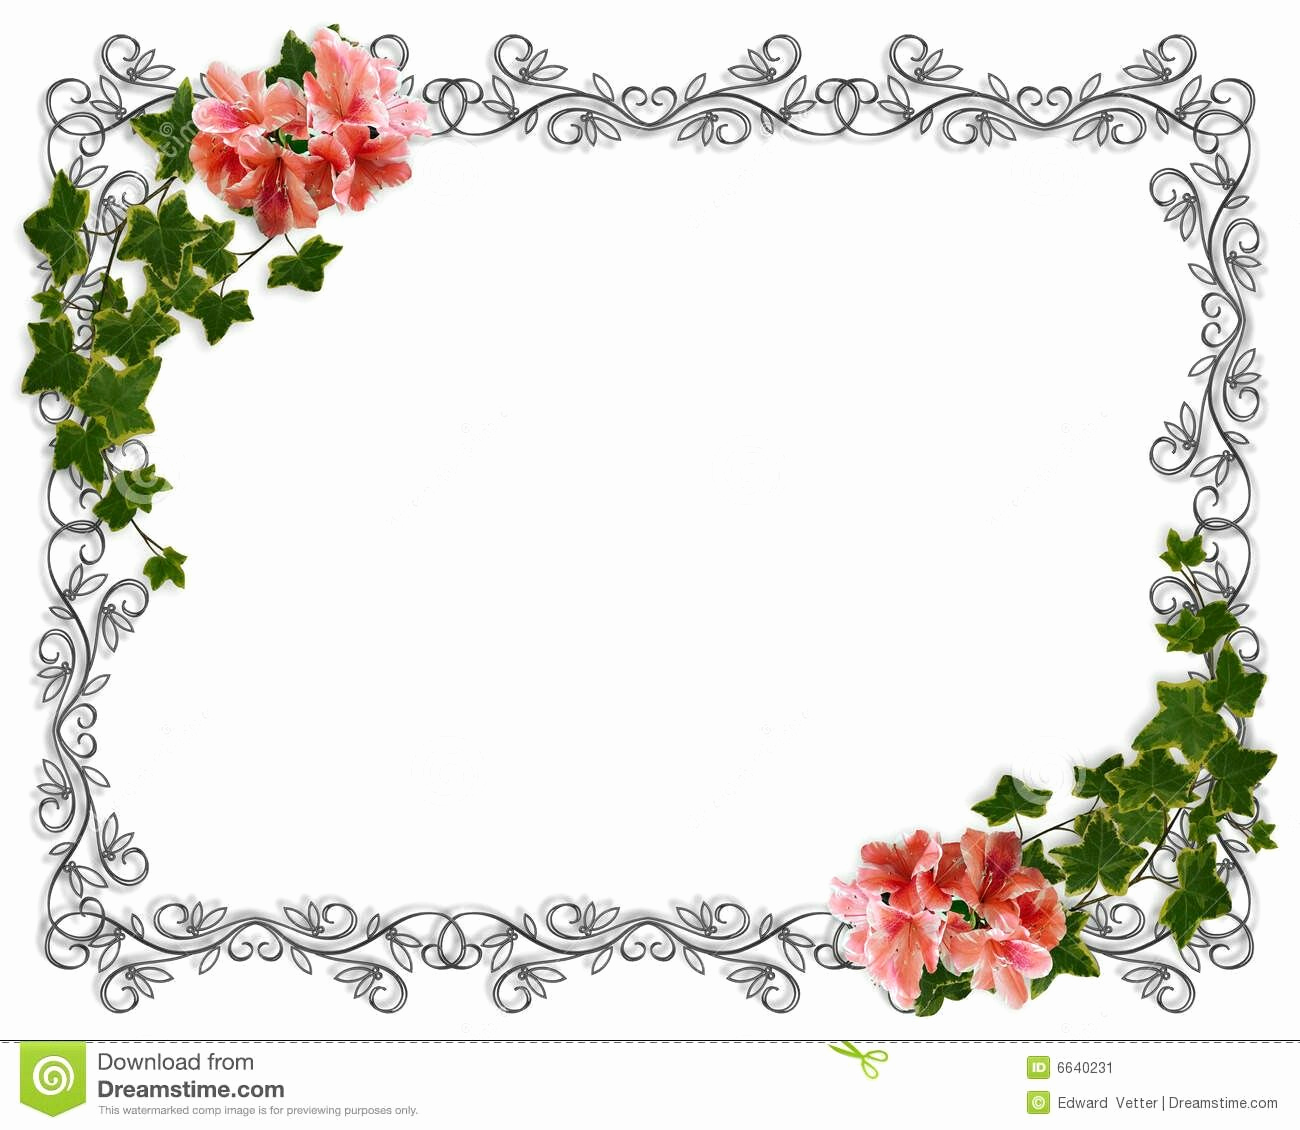 Wedding Invitation Borders Design Best Of Pin by Fadiyah Muhammad On Clips and Frames